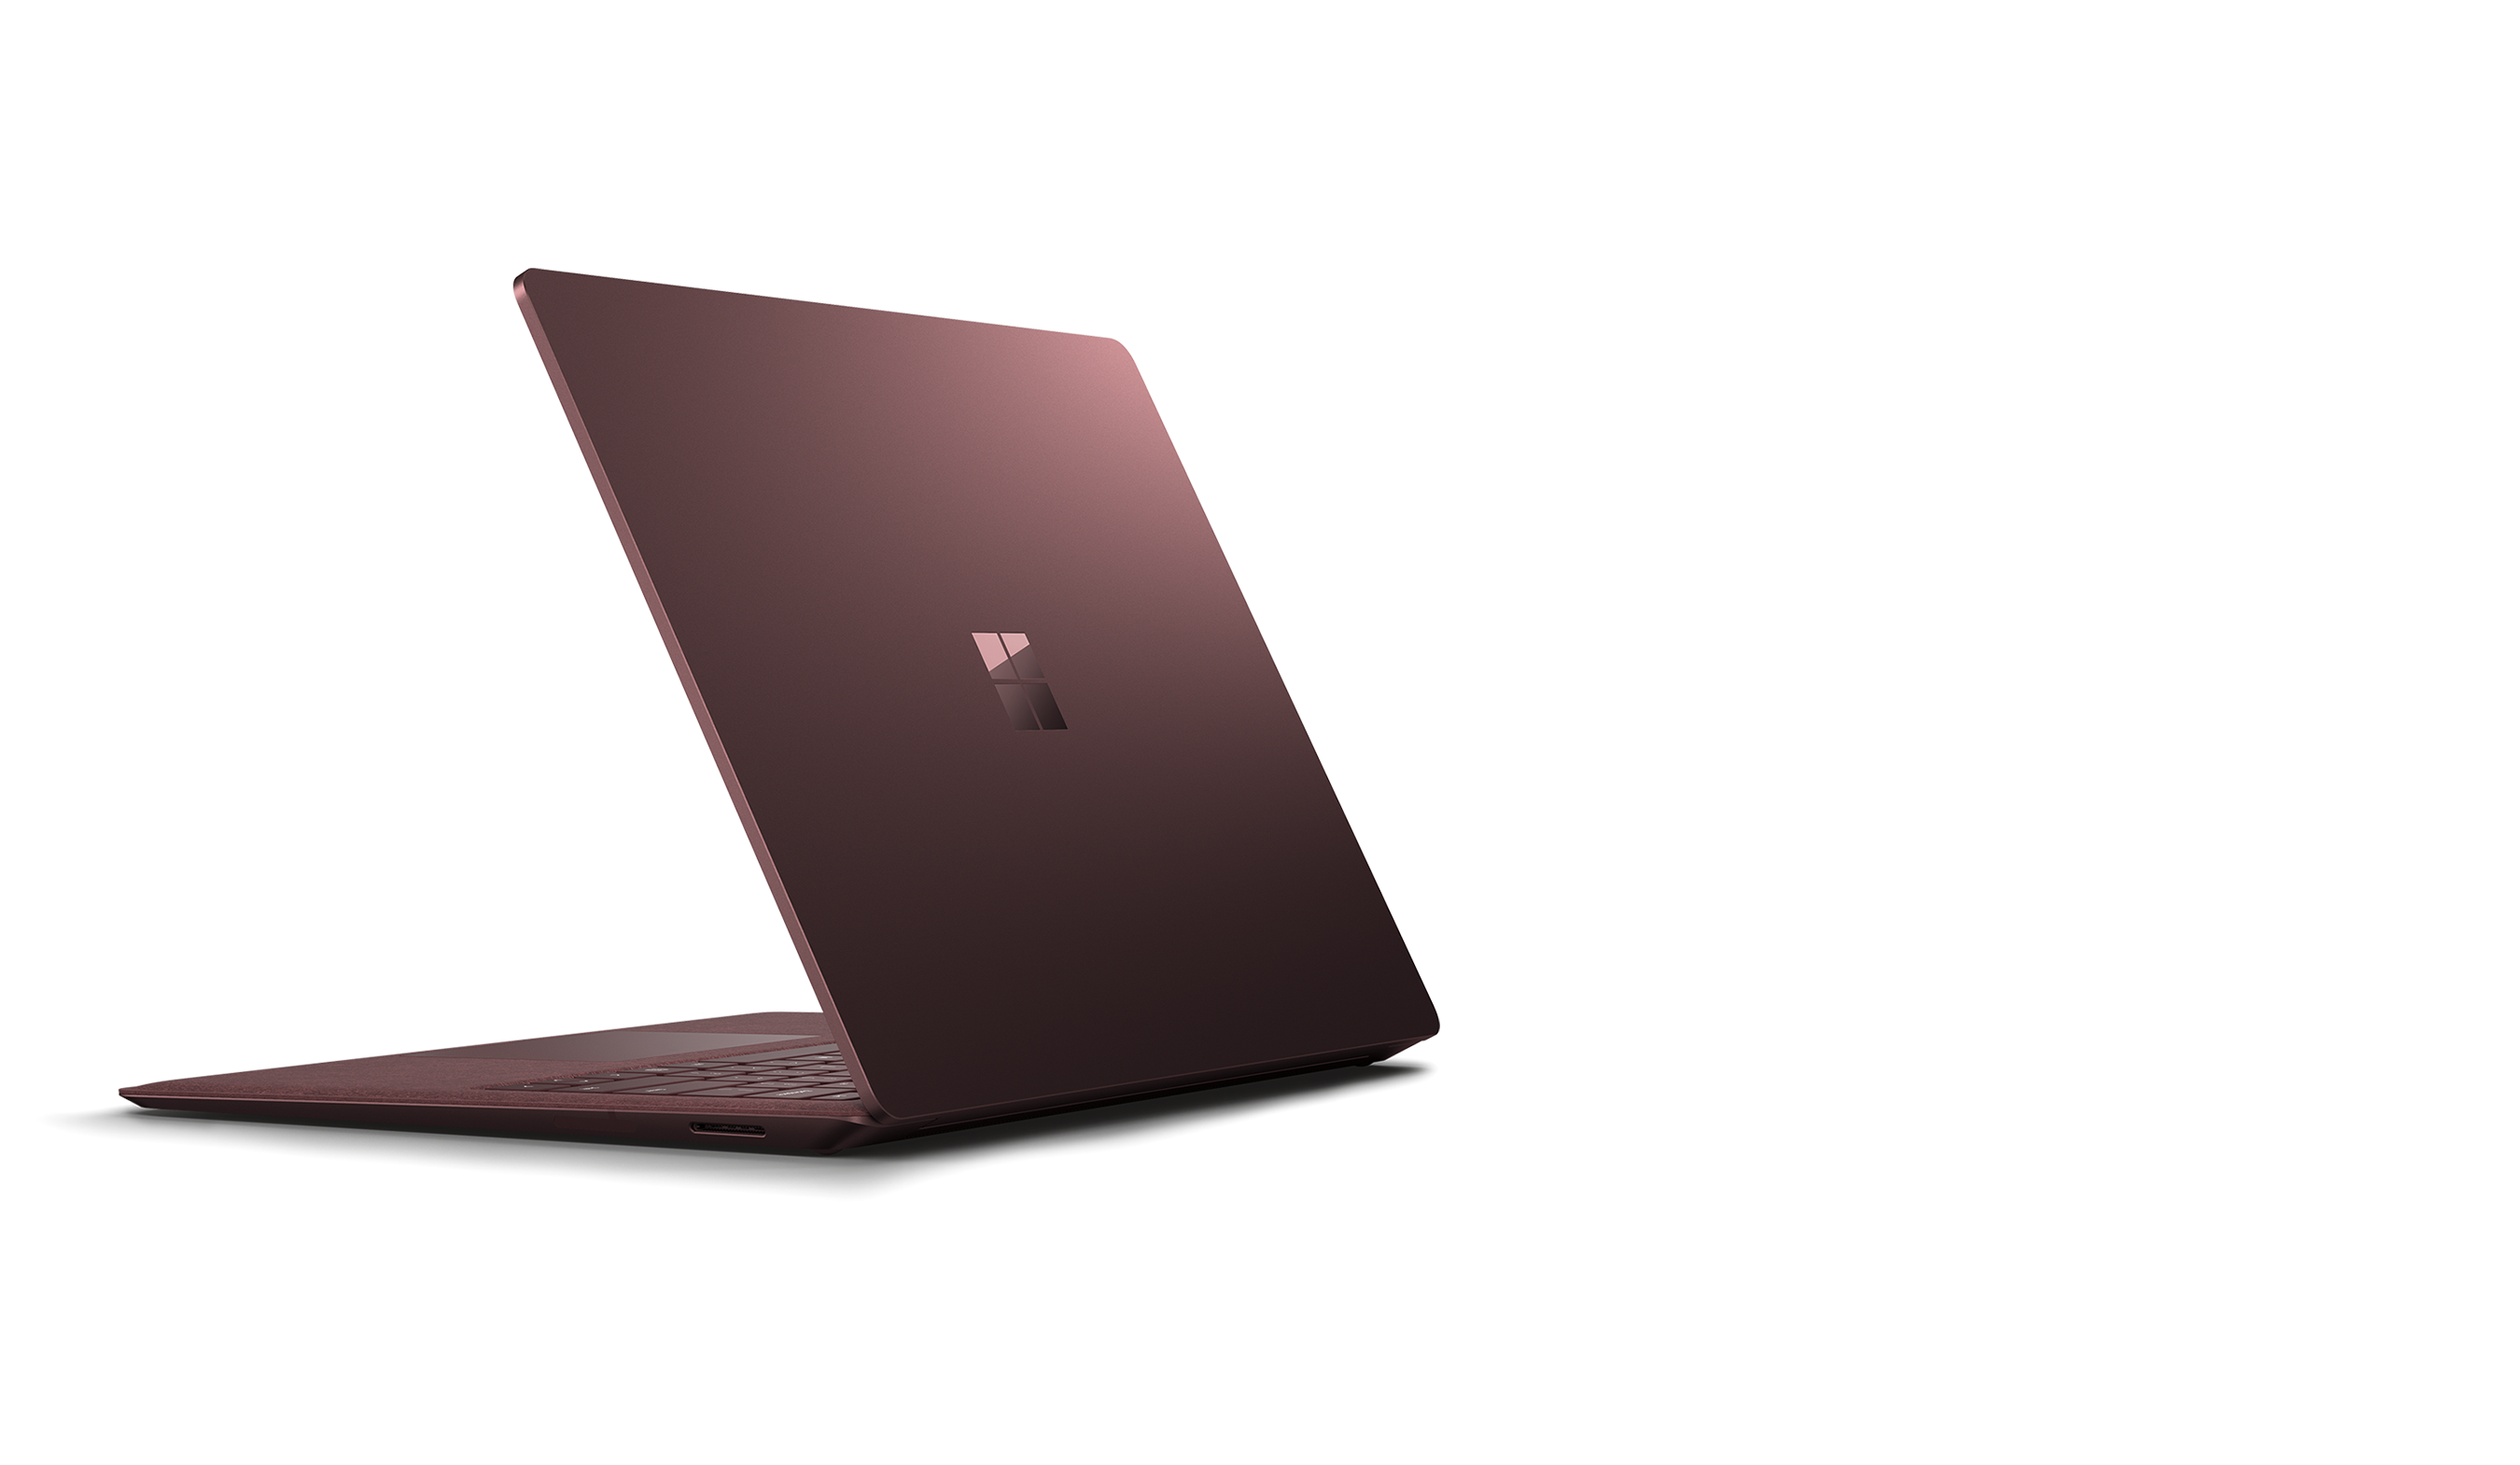 Geneigte Ansicht des Surface Laptop 2 von links